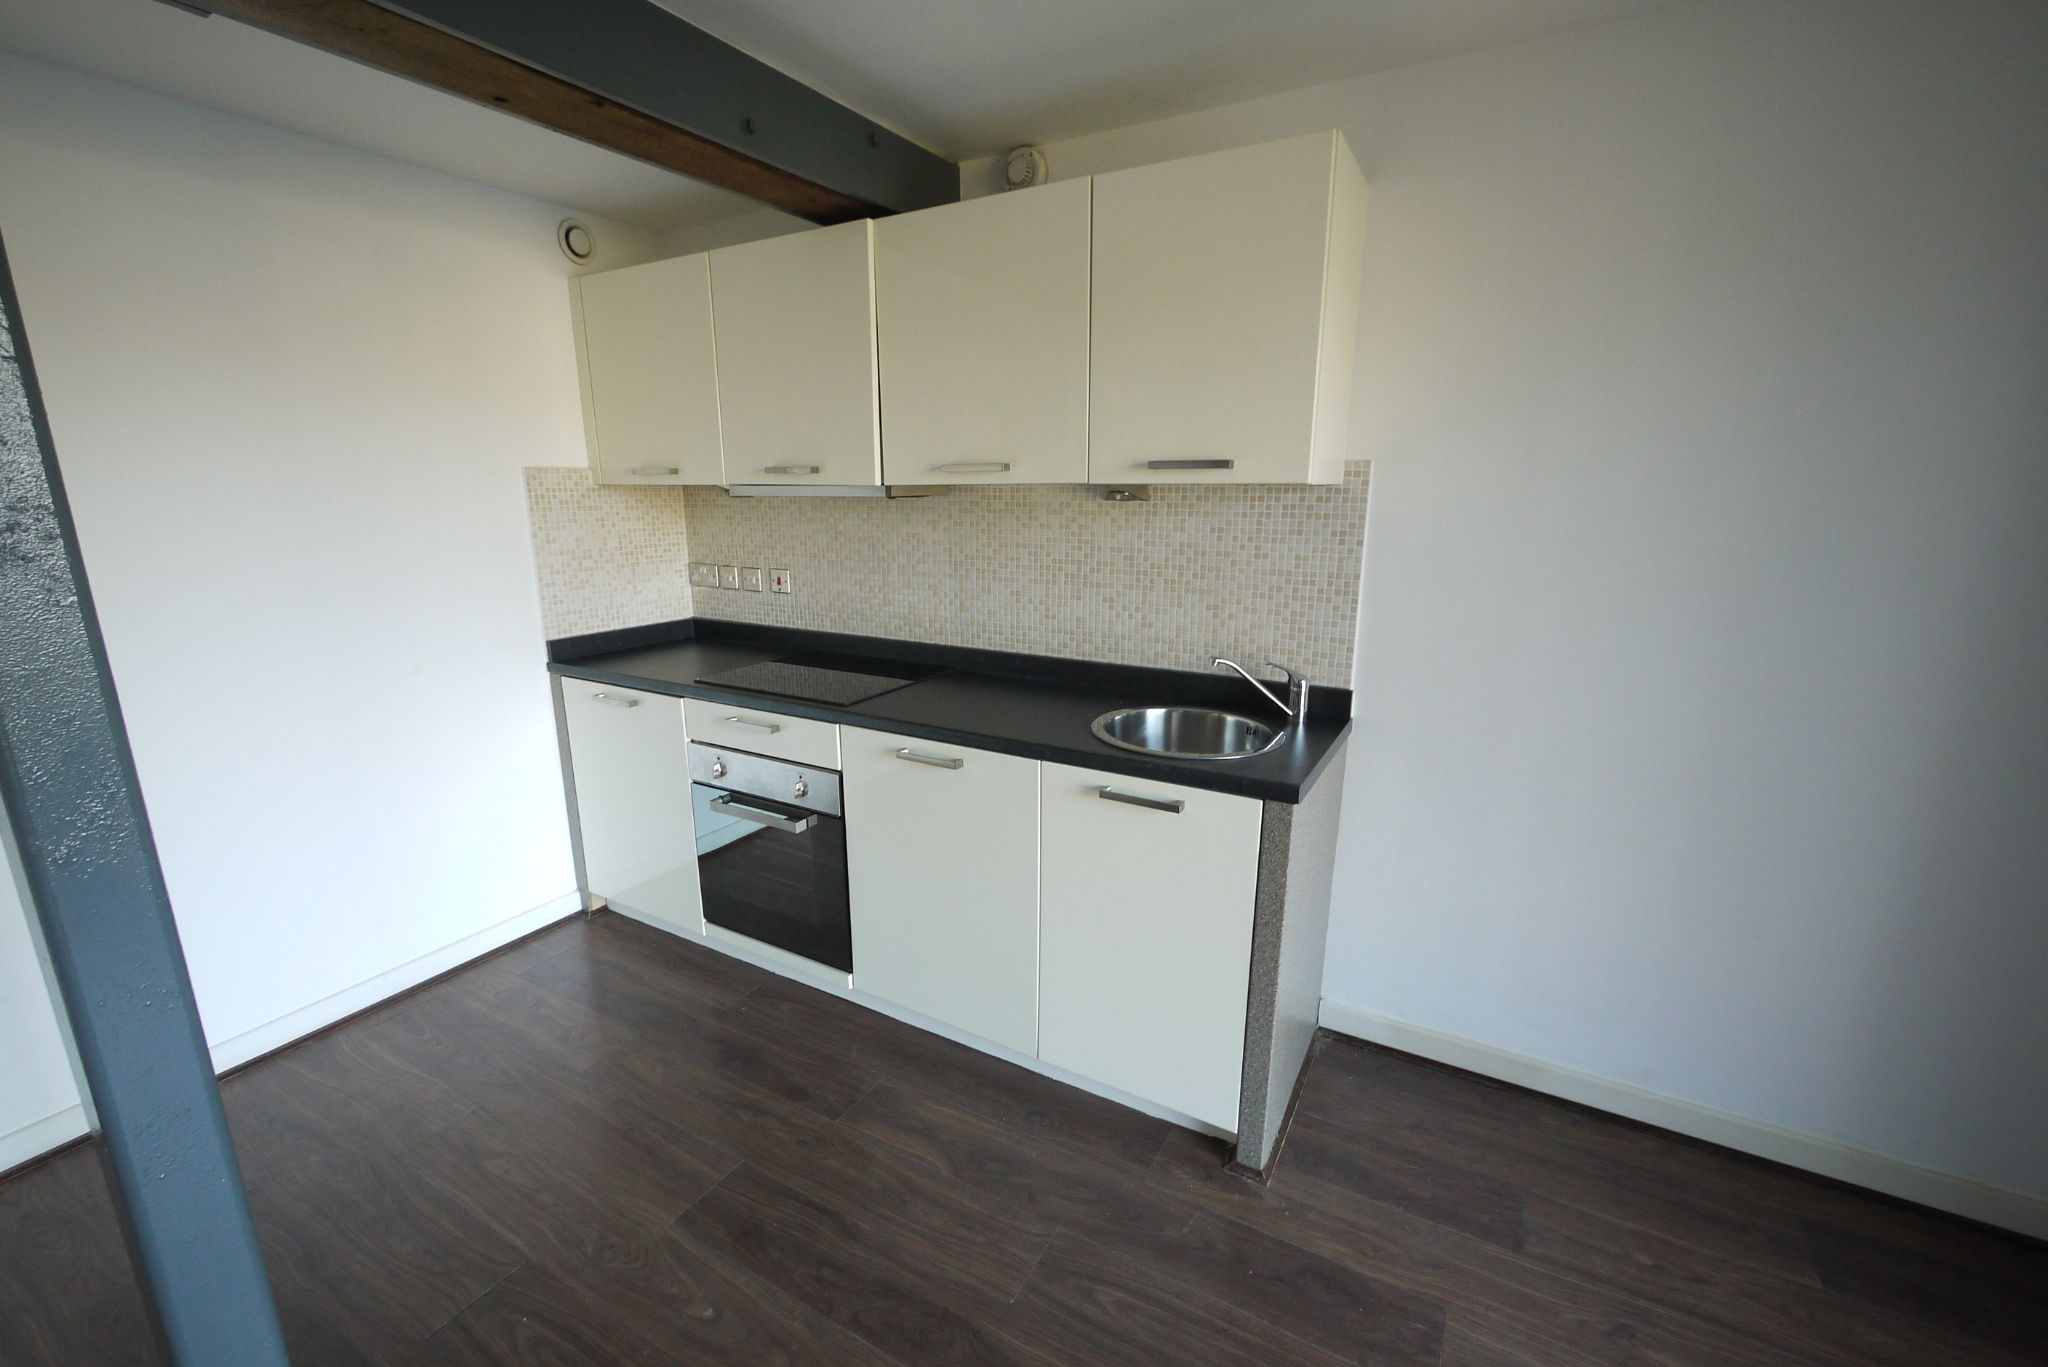 1 bedroom ground floor flat/apartment SSTC in Brighouse - Photograph 3.